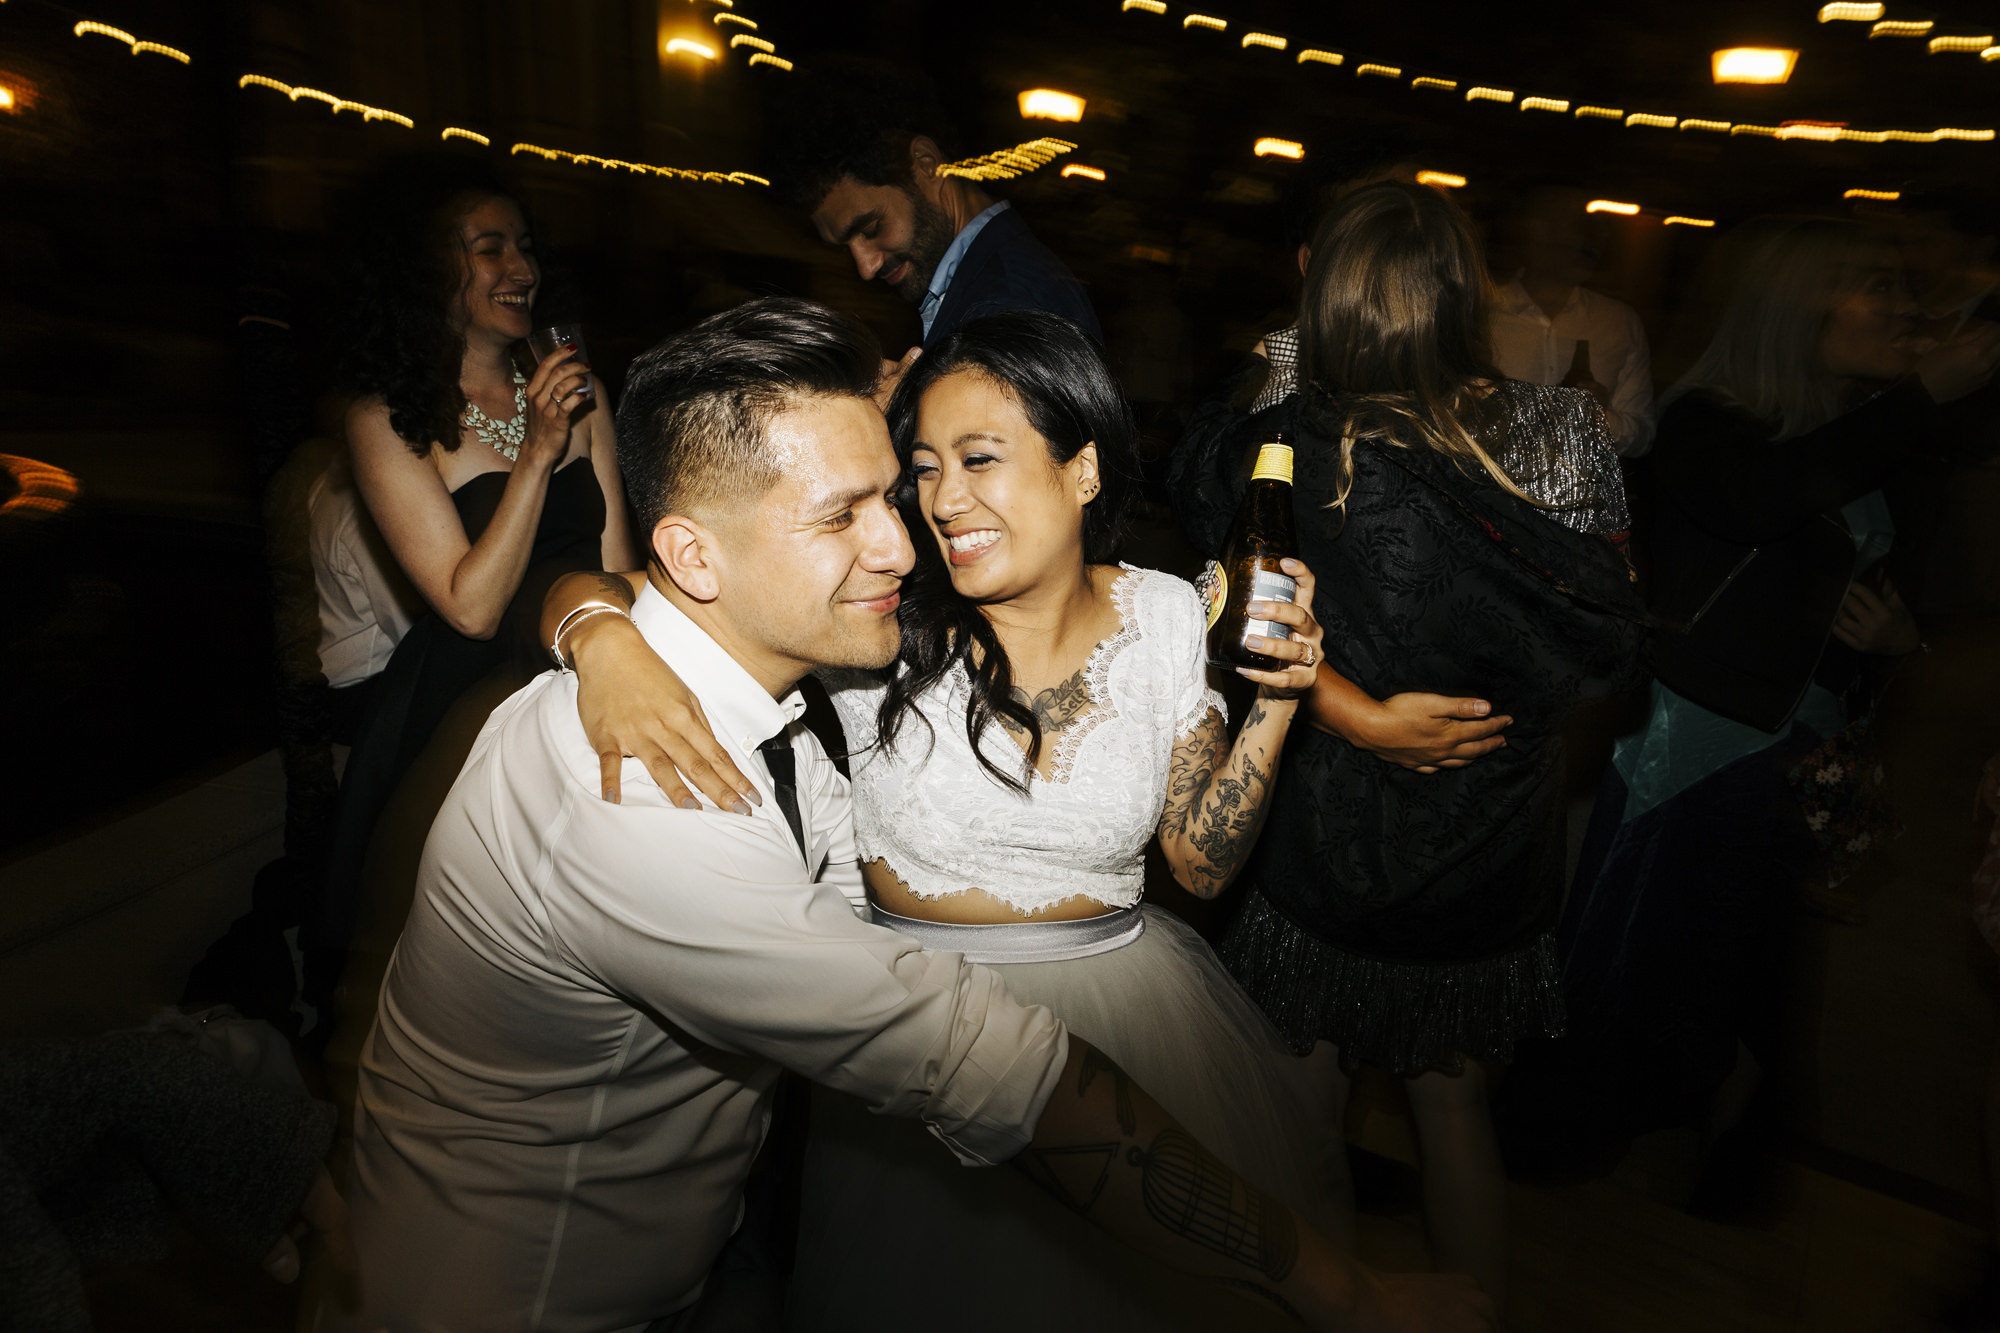 OHHWeddings_072_Oh-Honestly-Weddings-oakland-california-wedding.jpg